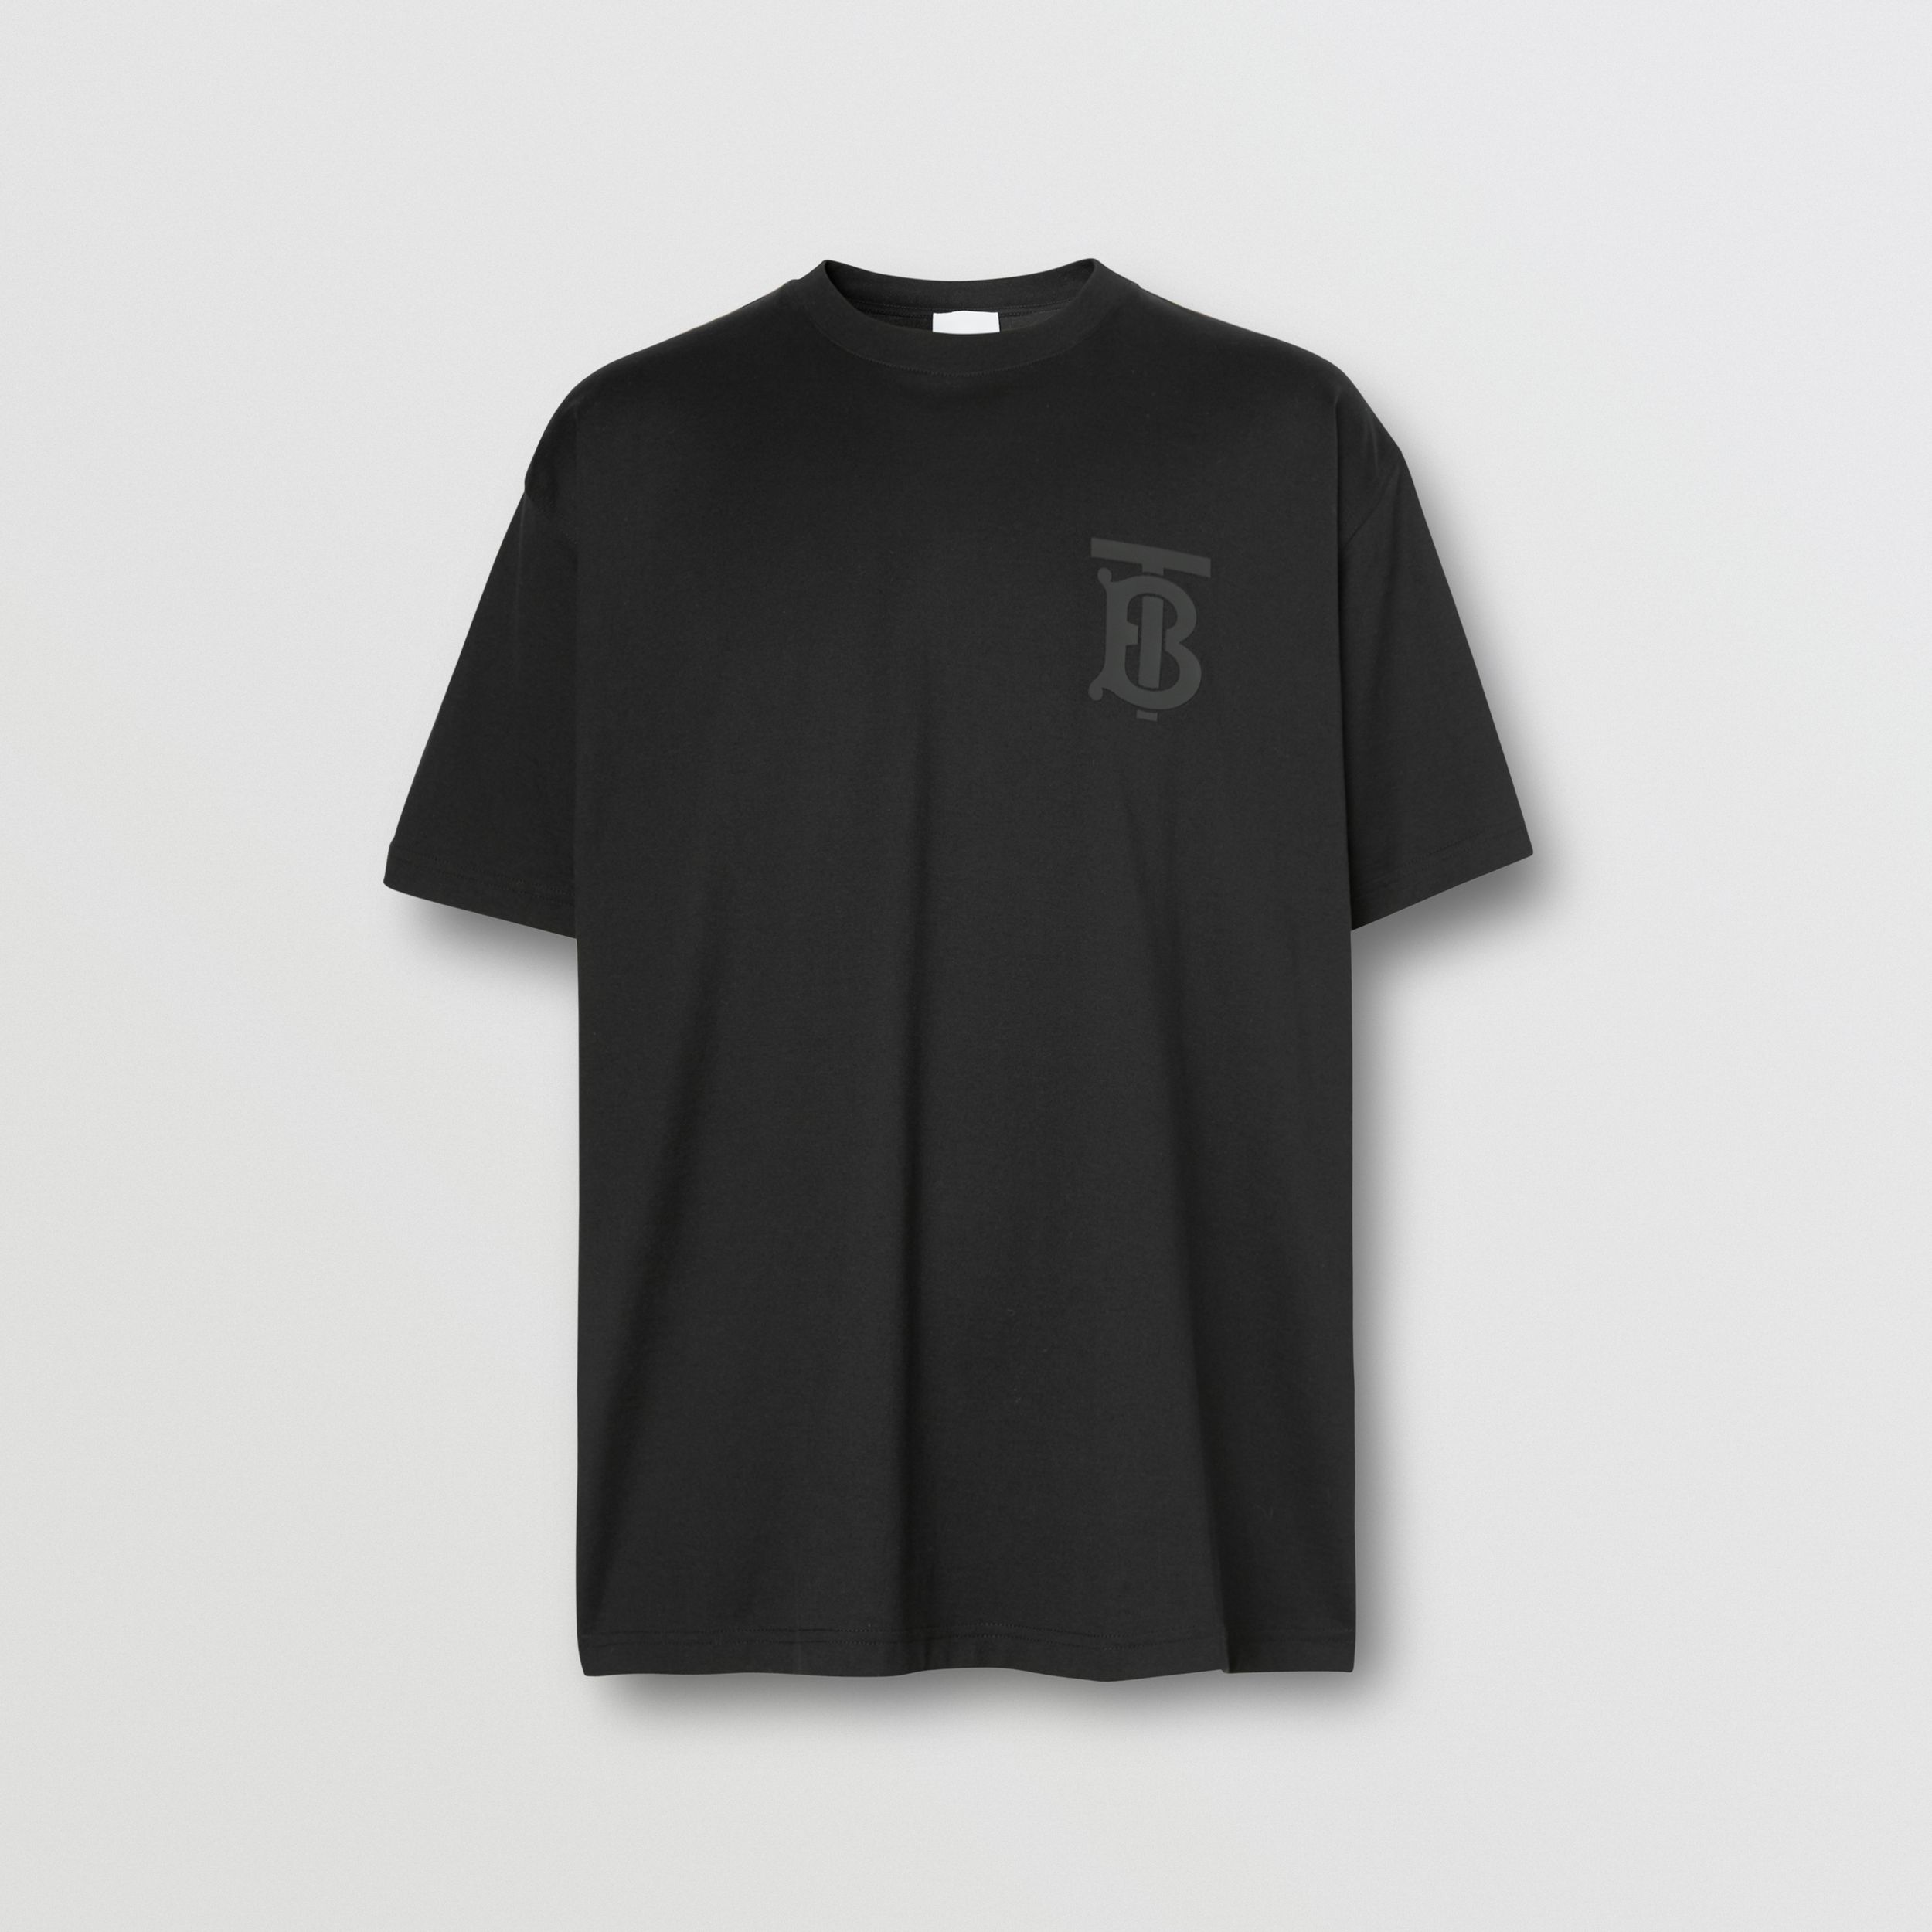 Monogram Motif Cotton Oversized T-shirt in Black | Burberry - 4